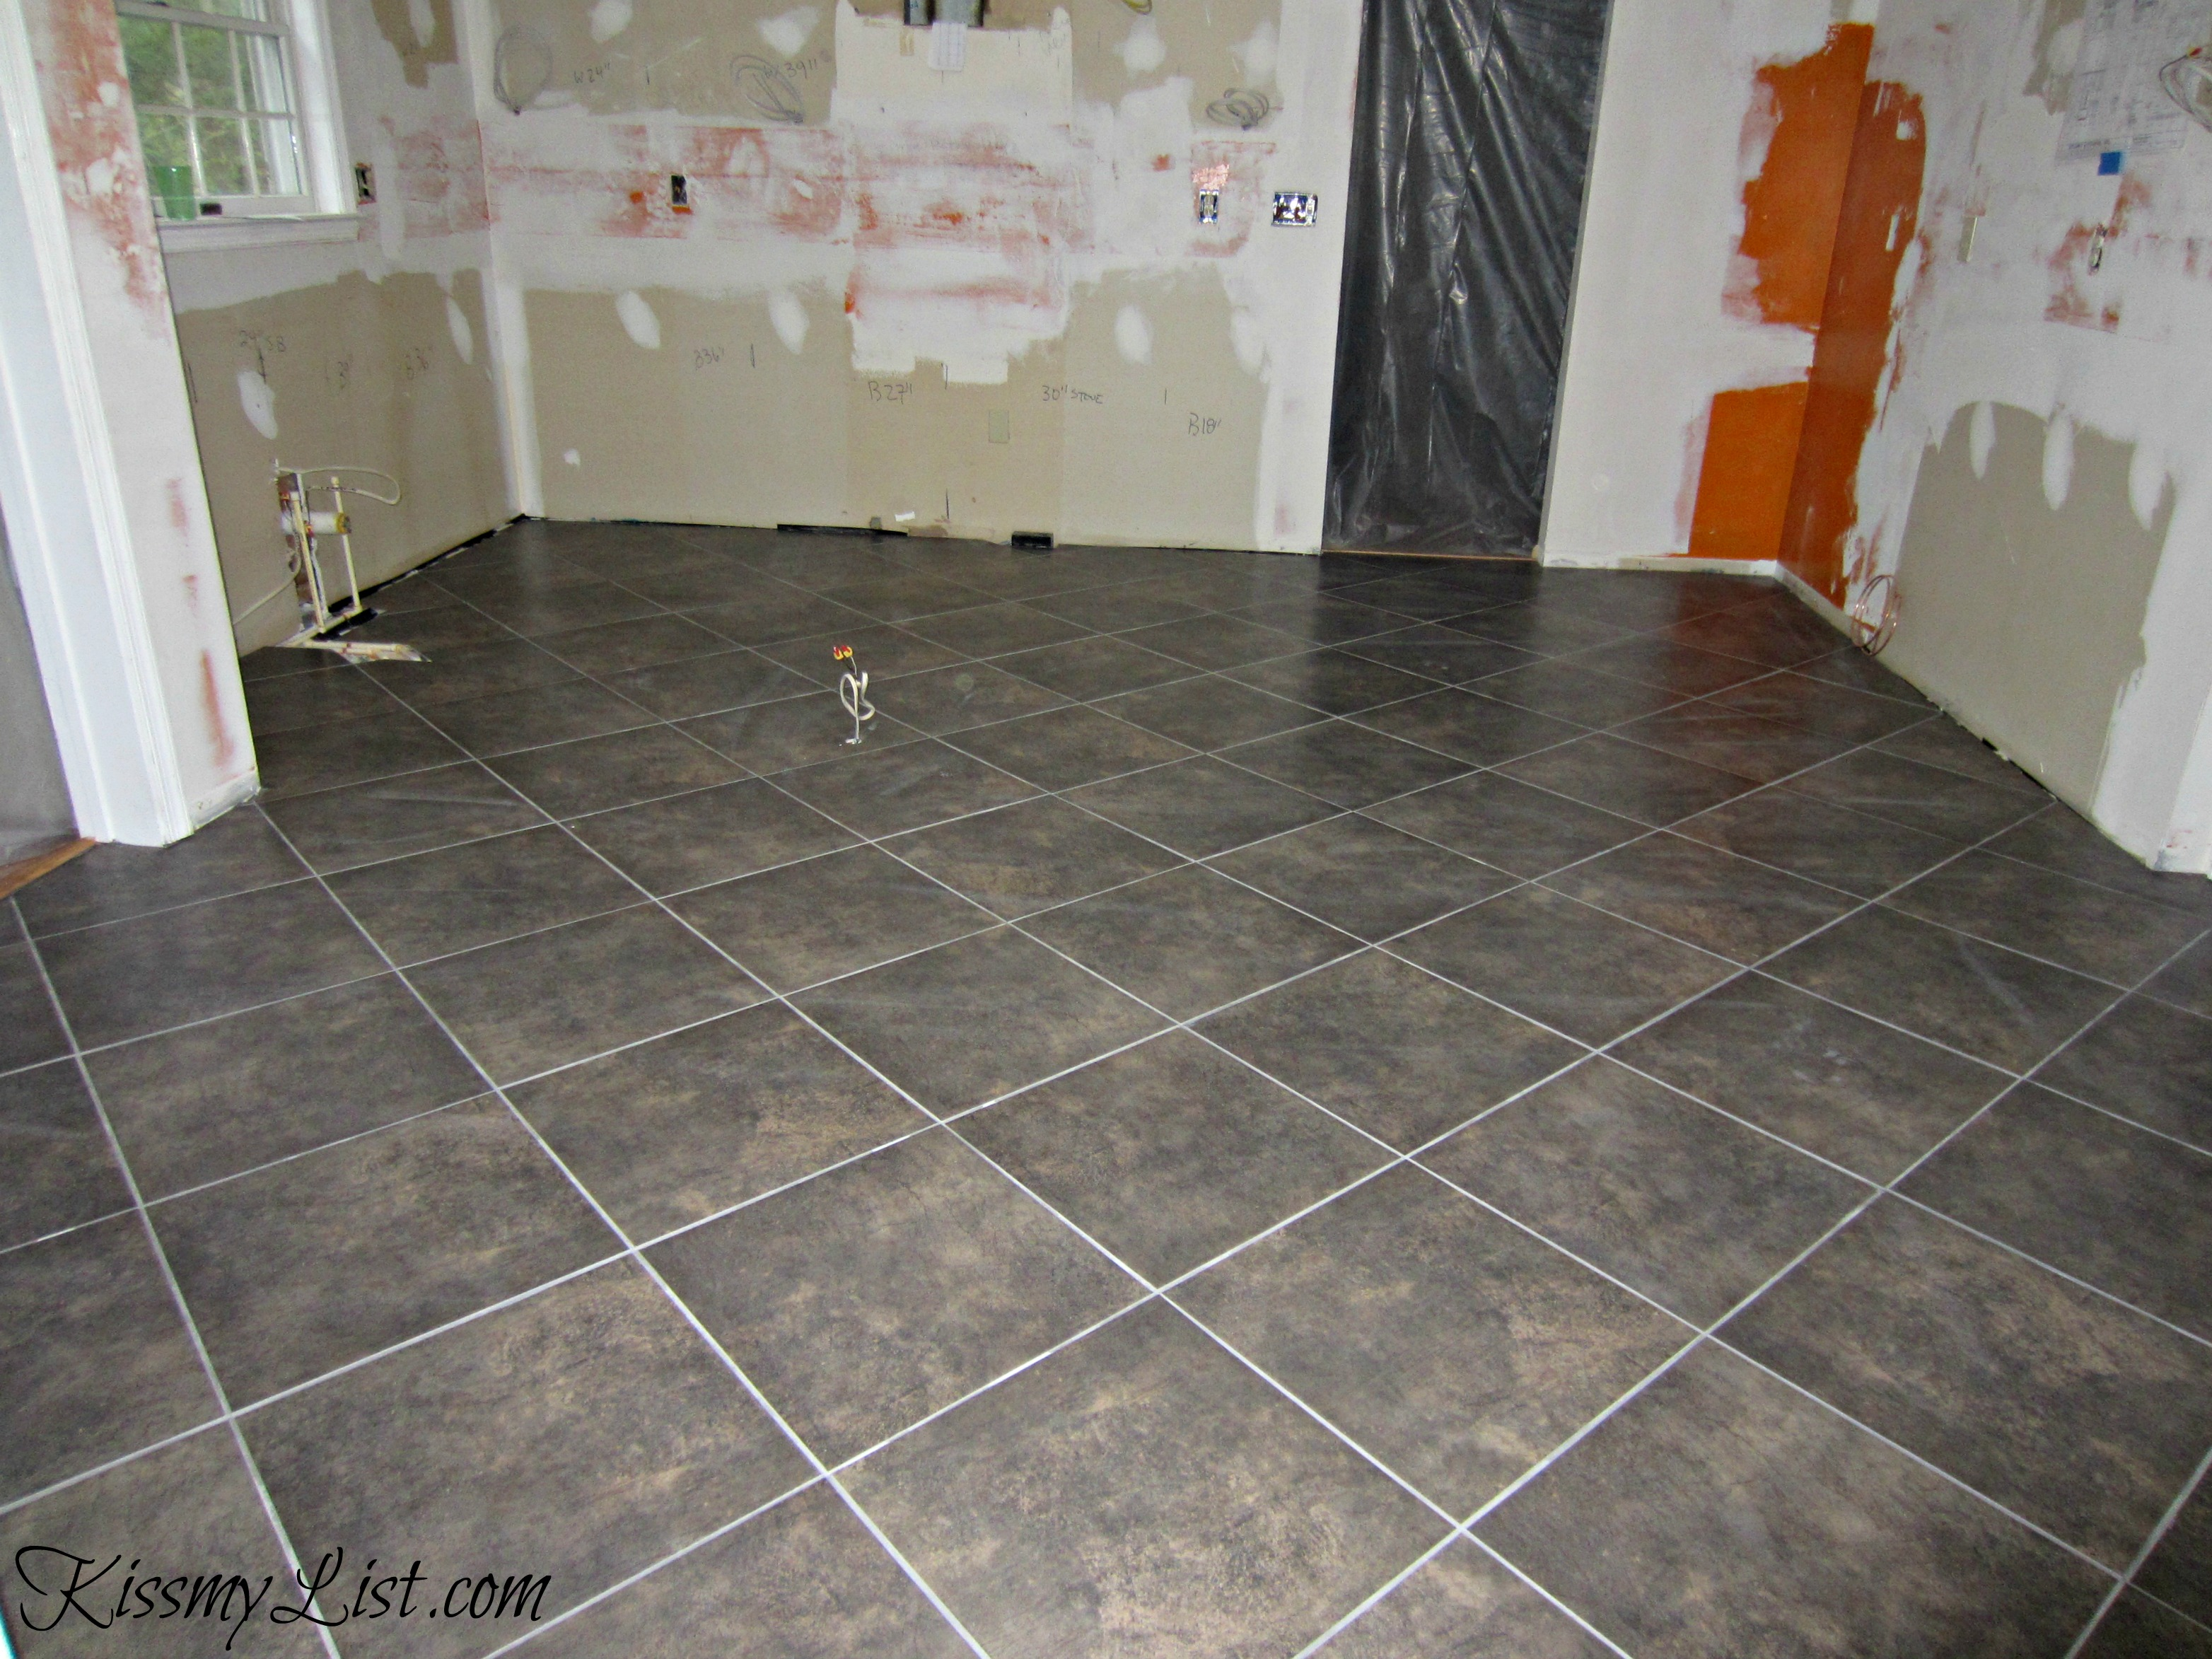 New Kitchen Floor The Big Reveal Kitchen Remodel Is Complete Kiss My List